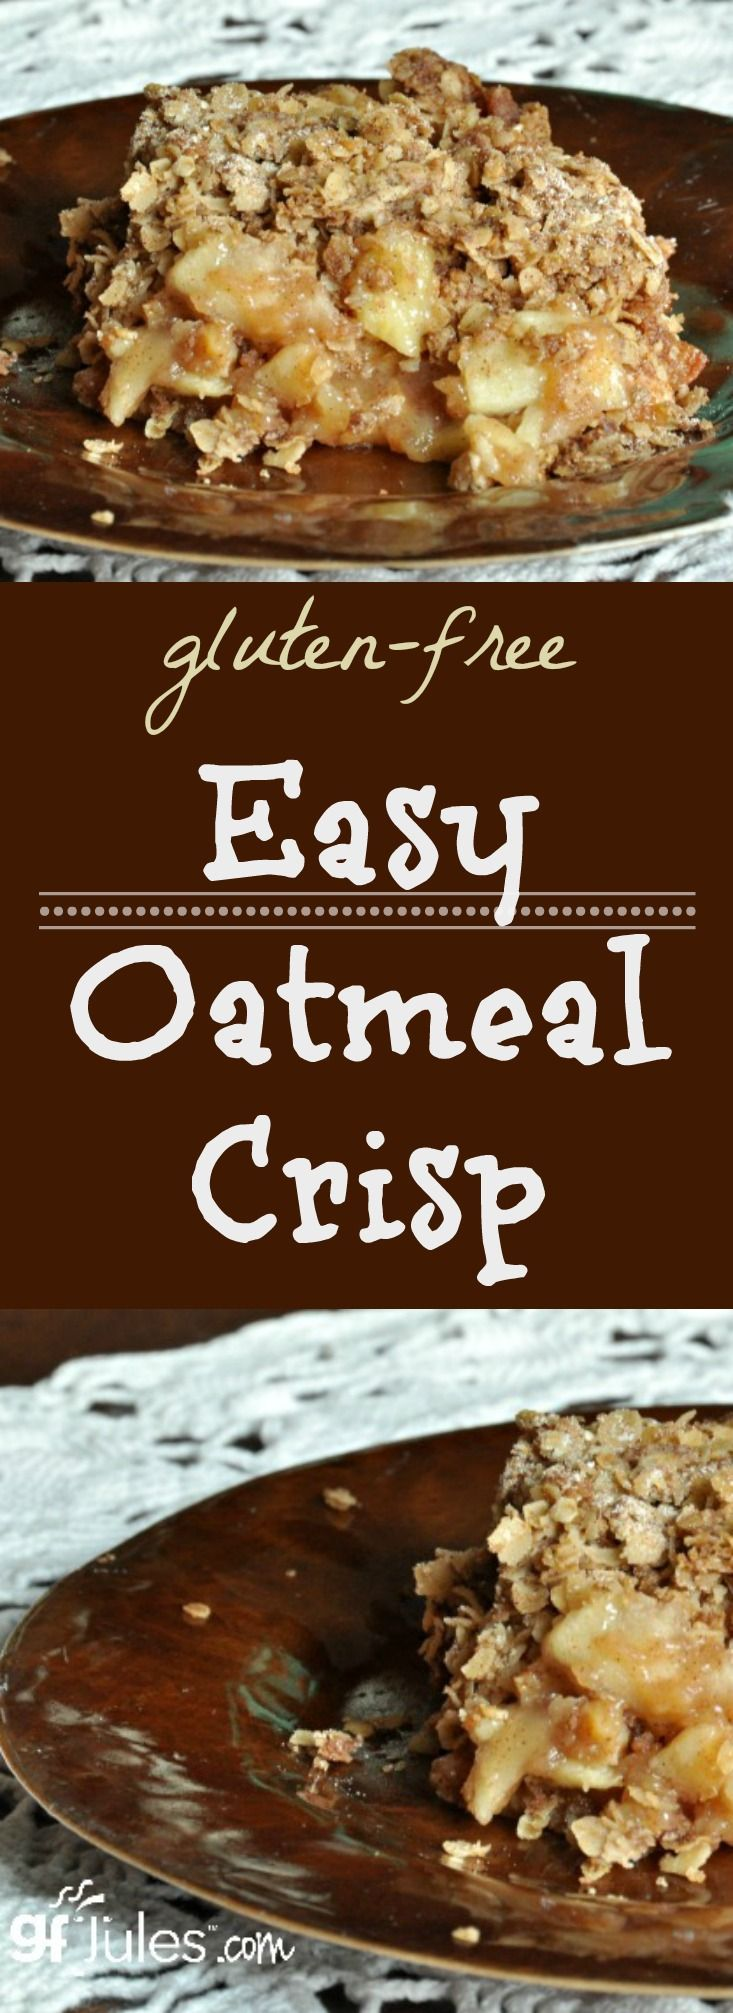 Easy Gluten Free Oatmeal Crisp - one of the fastest gluten-free desserts you can whip up! Just be sure to use certified gluten-free oats! More info in recipe. |gfJules.com